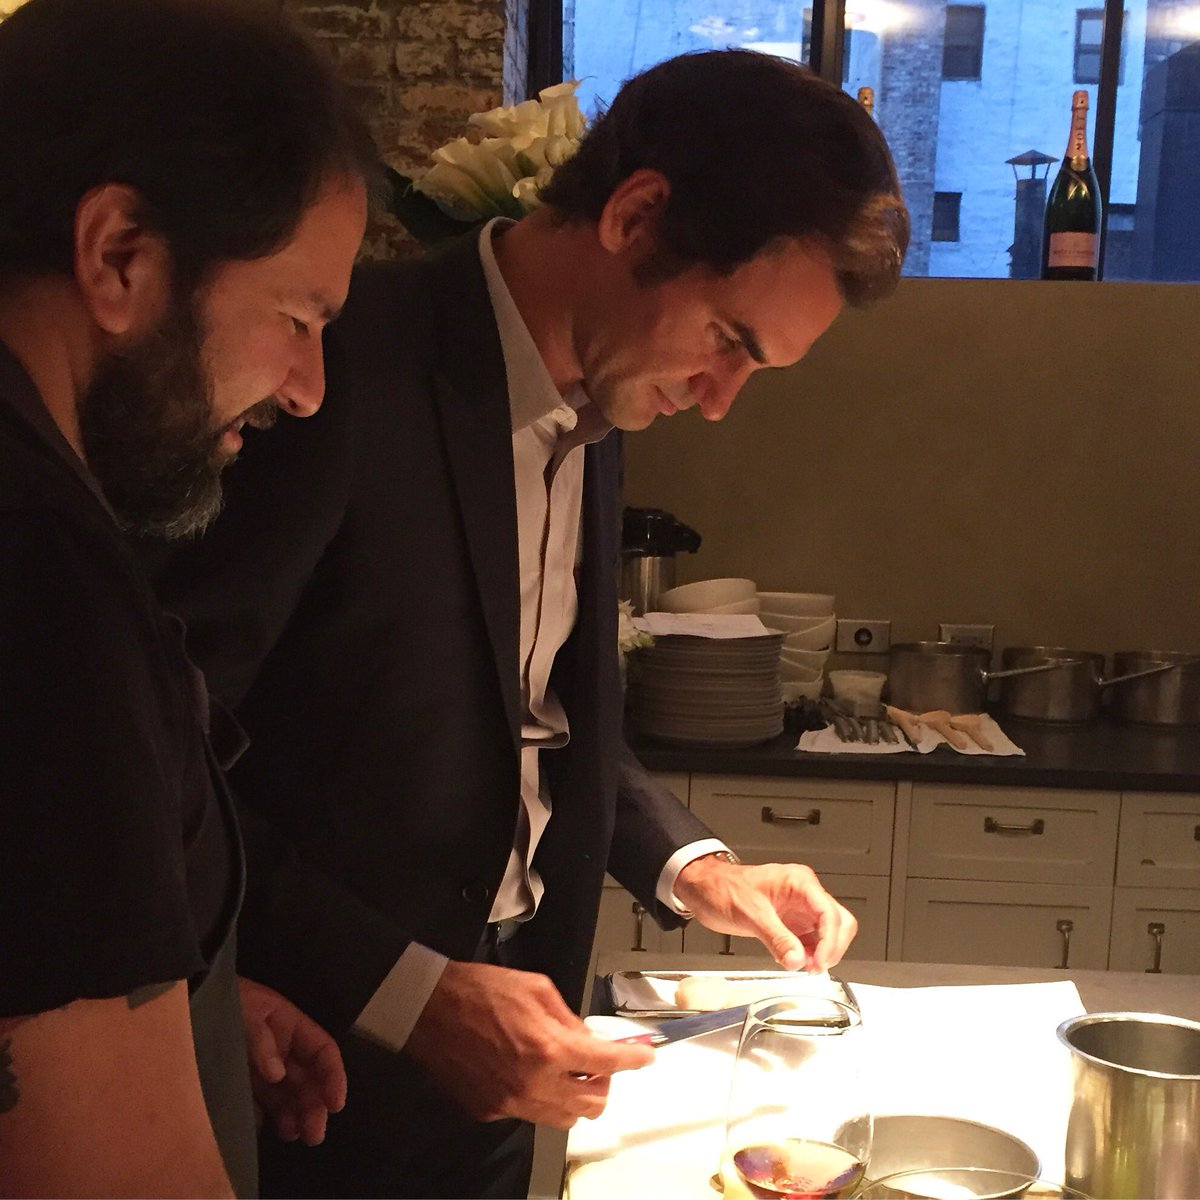 Cool hanging out & slicing up scallops w @enriqueolvera & @rogerfederer (!)  #foodandwine #MoetChandon #Champagne https://t.co/bMmx5w7l1i